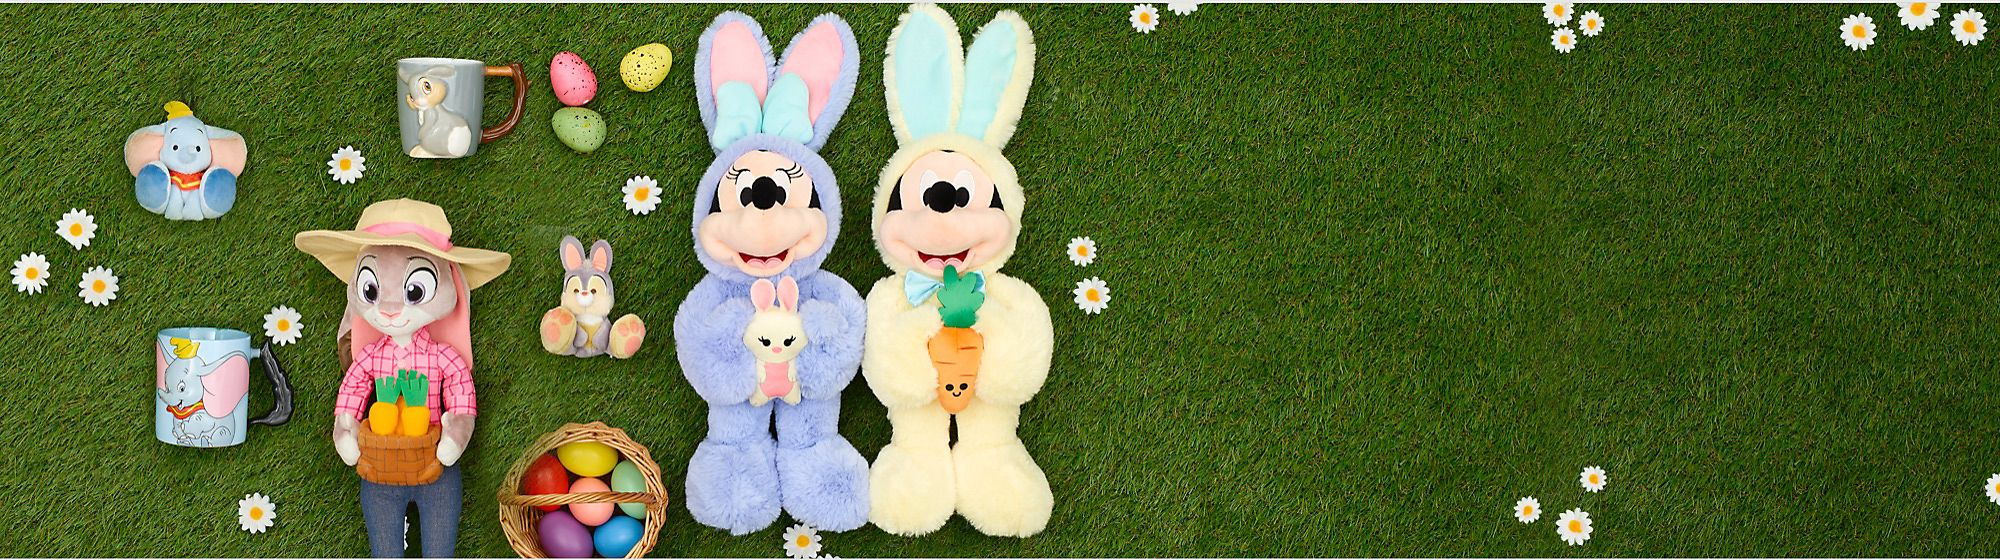 Happy Easter! Treat yourself this Easter with an array of soft toys and mugs